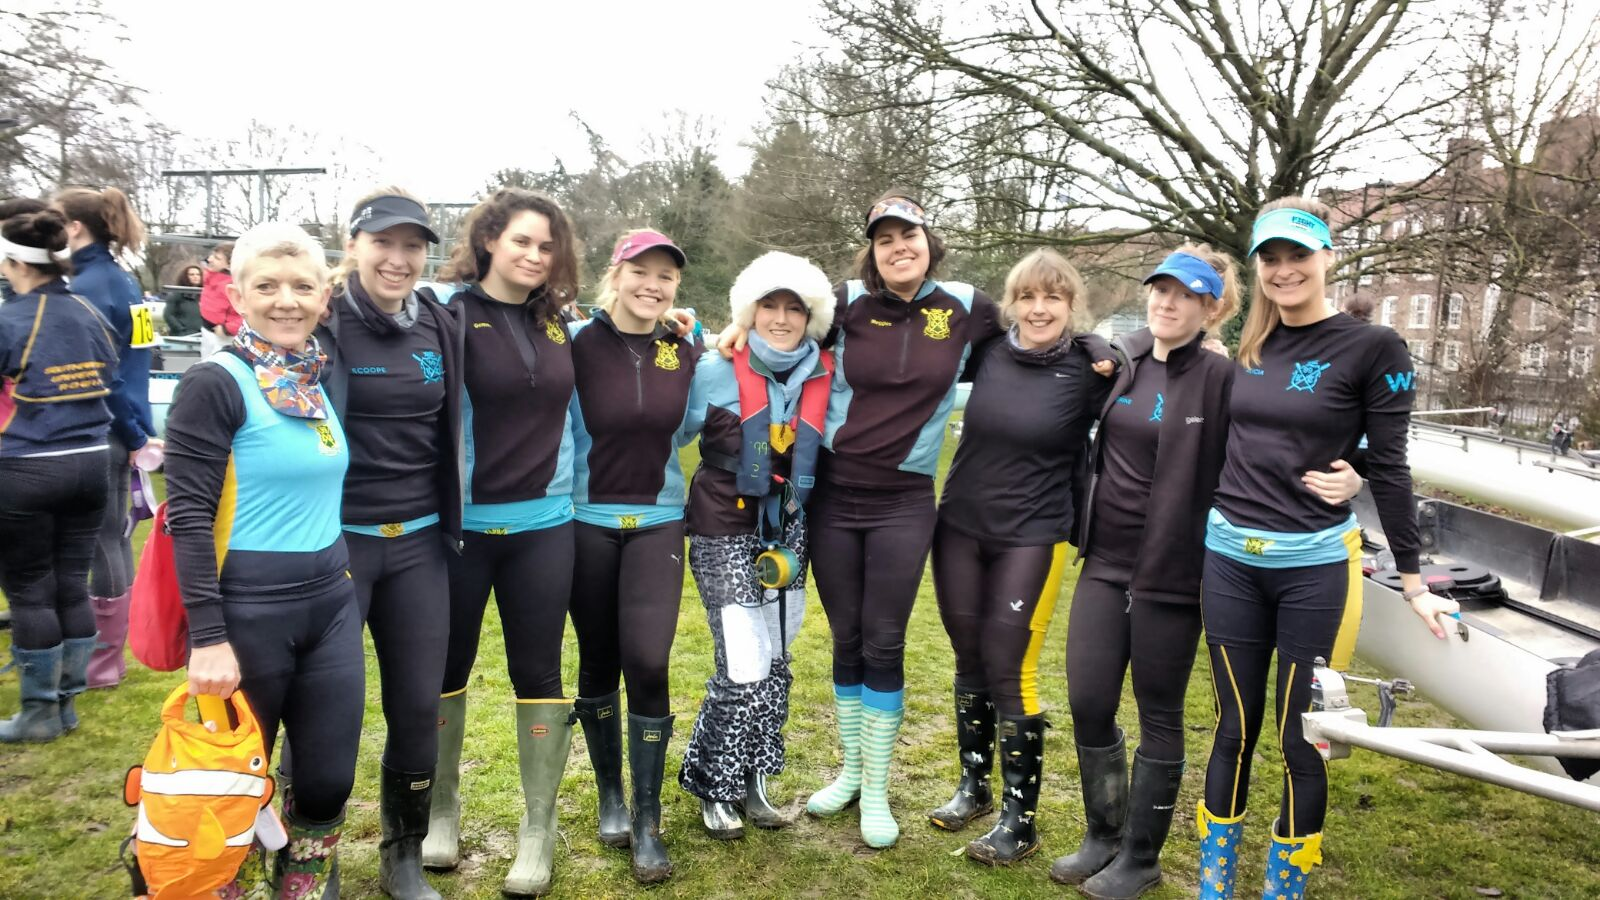 WeHoRR 10th March 2018 - W2 Crew - Left to Right - Sarah Catchapole, Sophie Coope, Gemma Douglas, Laura Dallaway, Elle Outram (Cox), Meg Barne, Nikki Braithwaite, Catherine Quinn and Alicia Wilcox